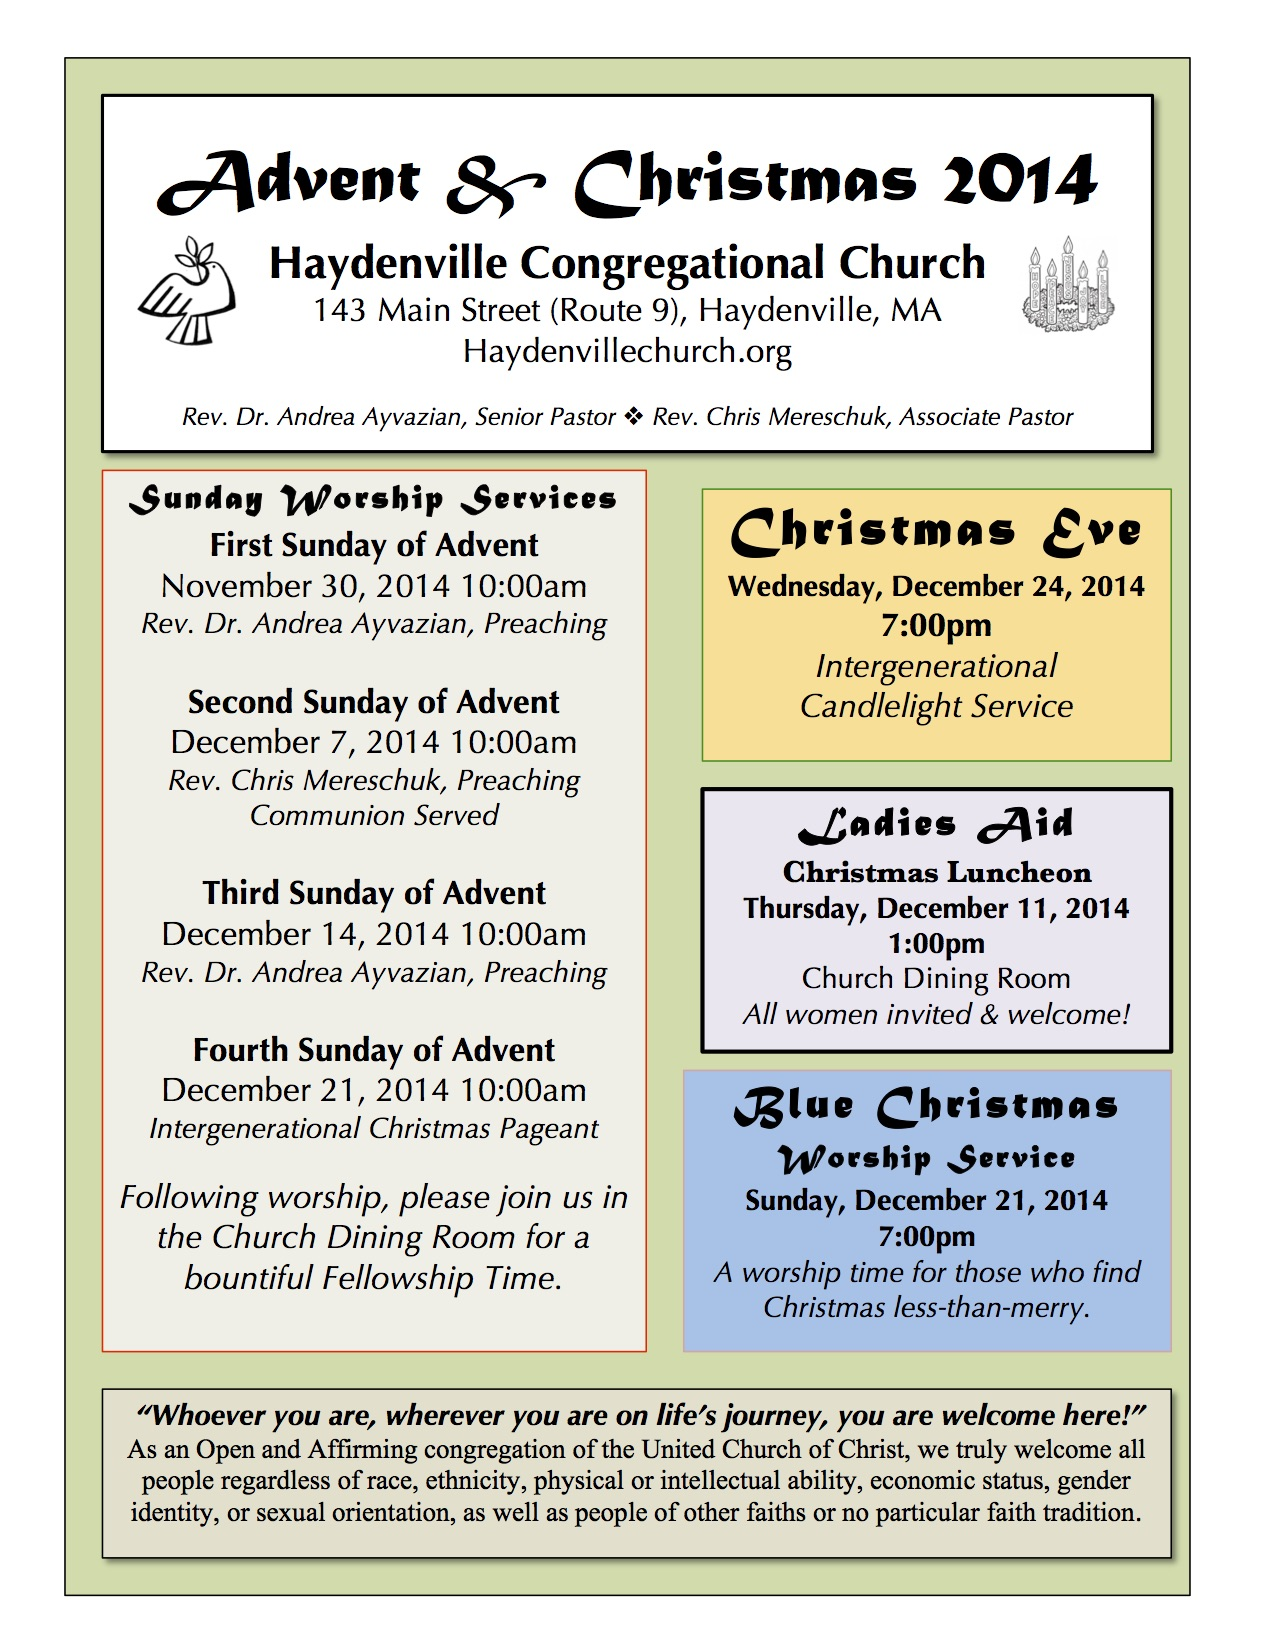 Advent Christmas 2014 Flyer Version 2 copy